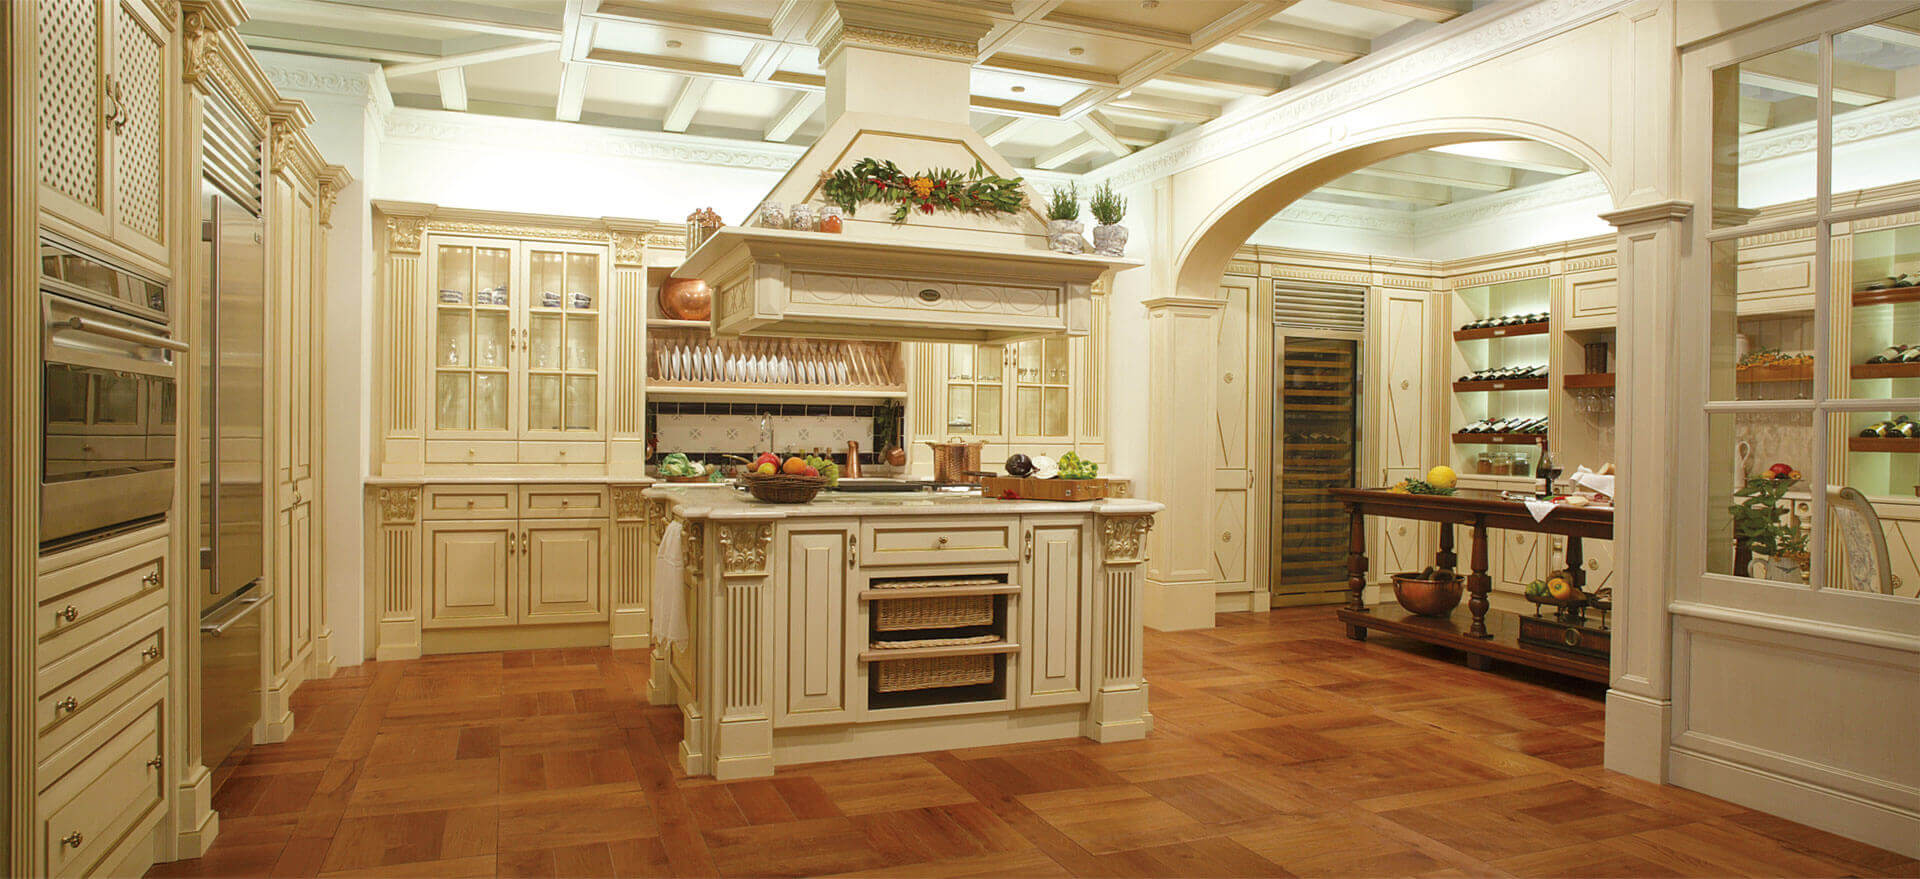 Top 65 luxury kitchen design ideas exclusive gallery - Luxury kitchen cabinets ...